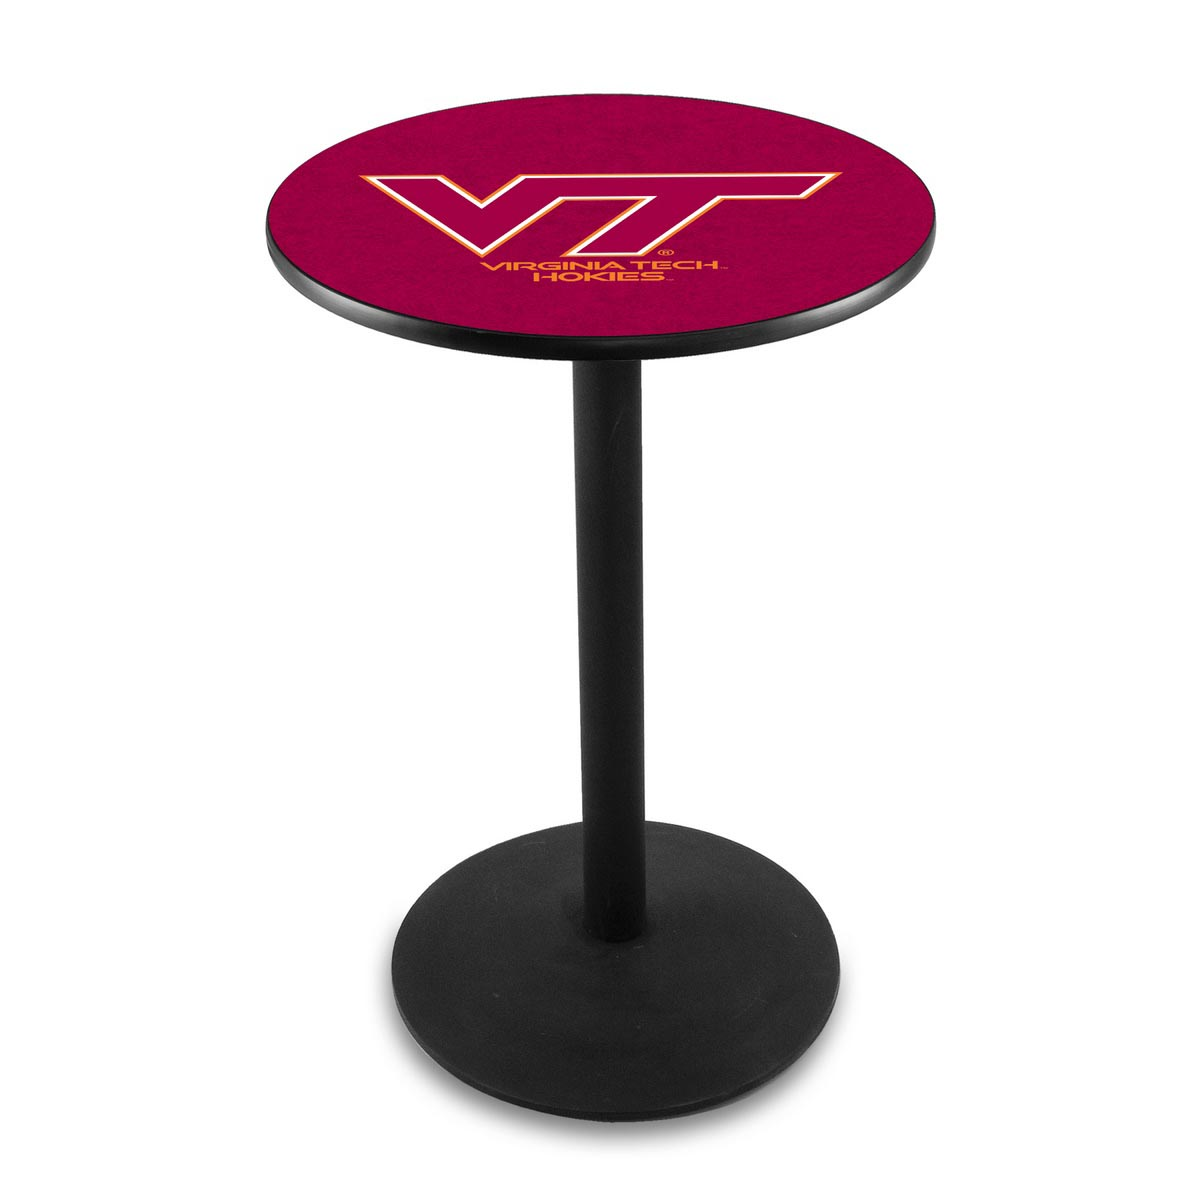 Exquisite Virginia Tech University Logo Pub Bar Table Round Stand Product Photo